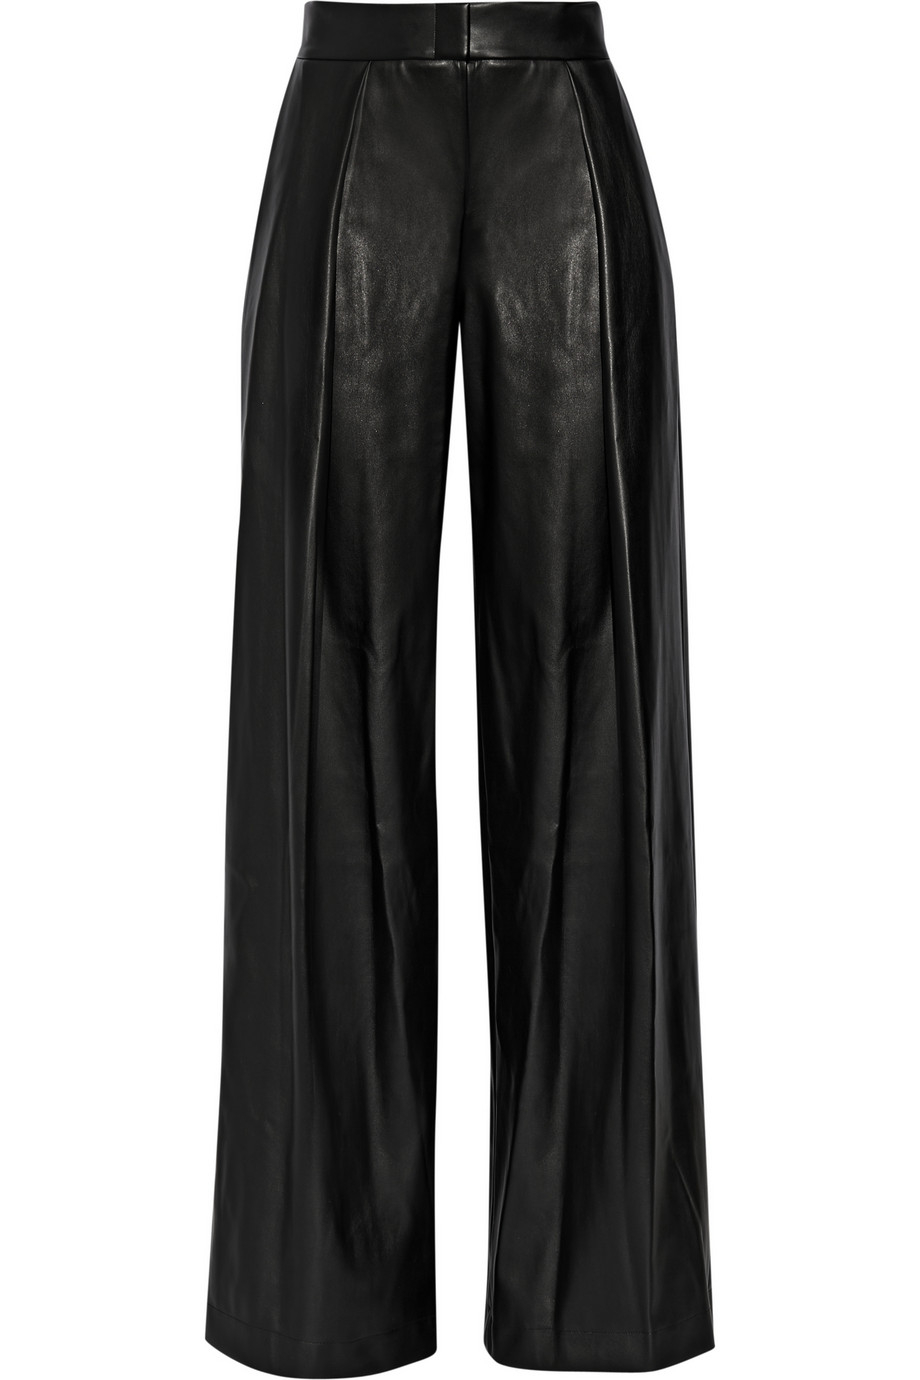 Lyst Dkny Faux Leather Wide Leg Pants In Black